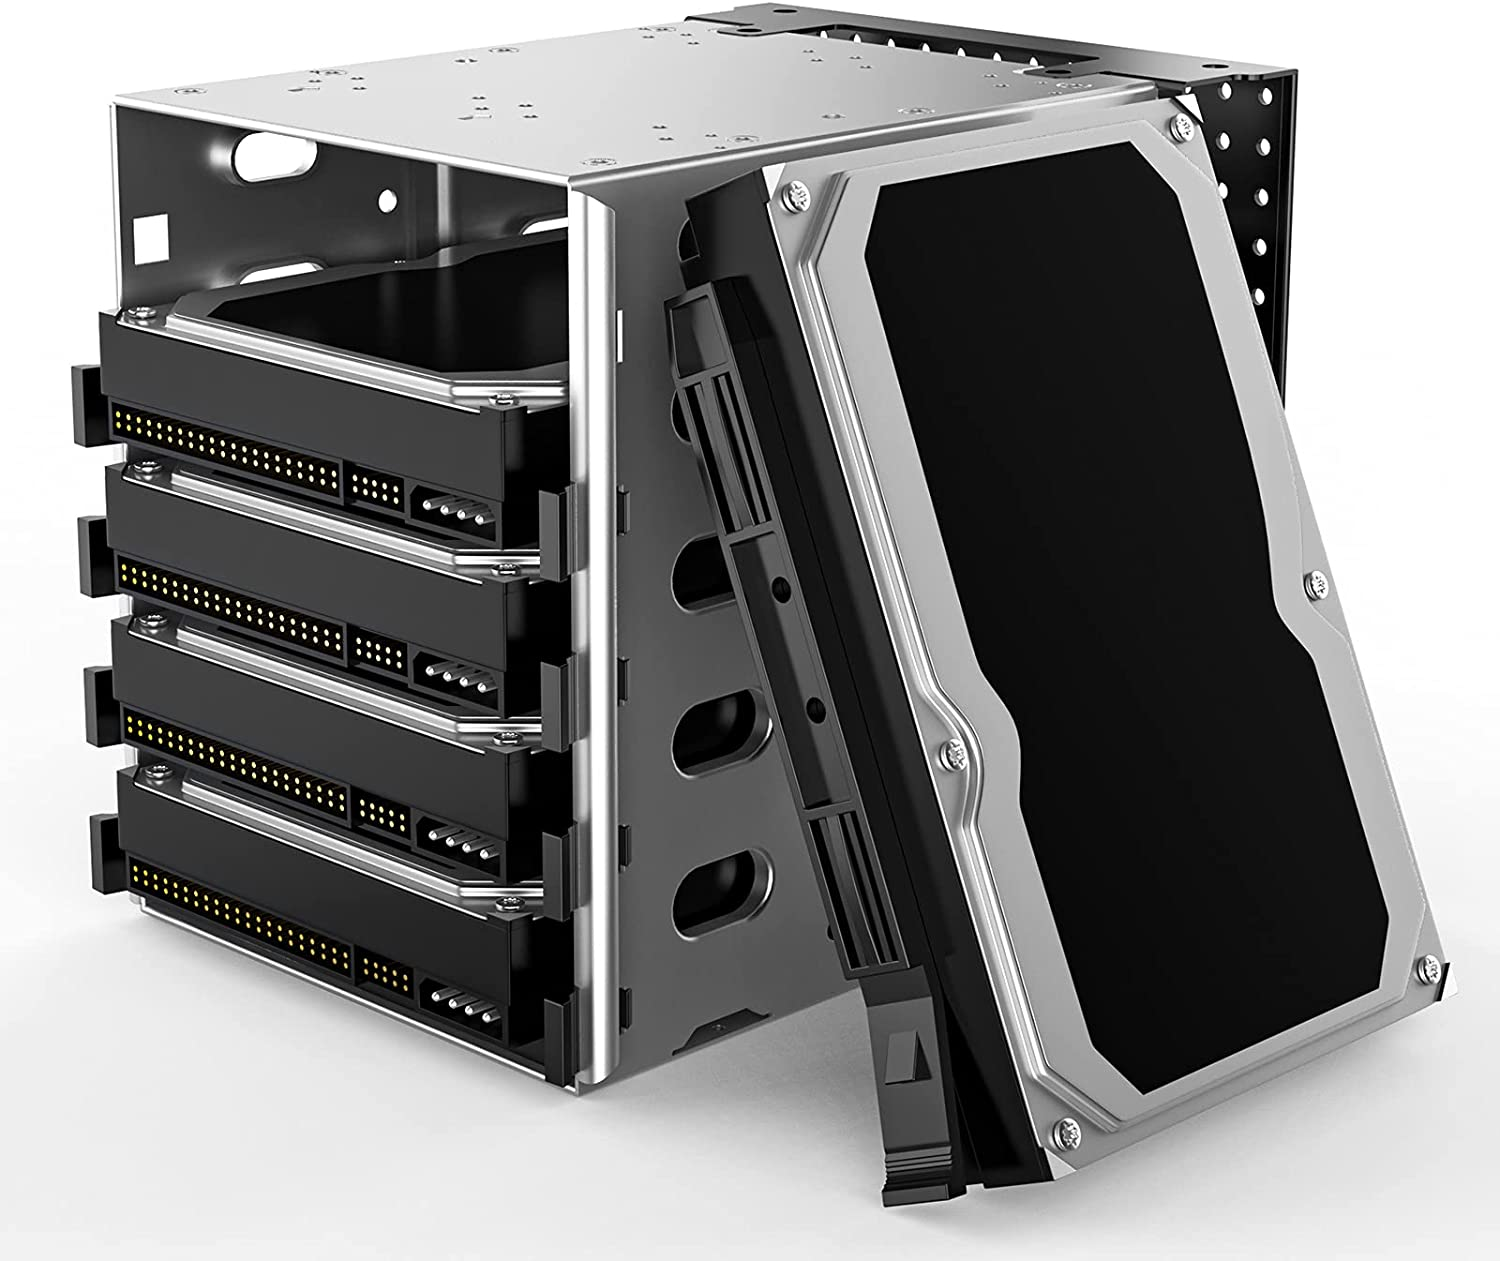 Hard Drive Cage, Stainless Steel Cage Hard Drive Tray Rack with Fan Space, Adapter Rack Bracket SATA 5.25